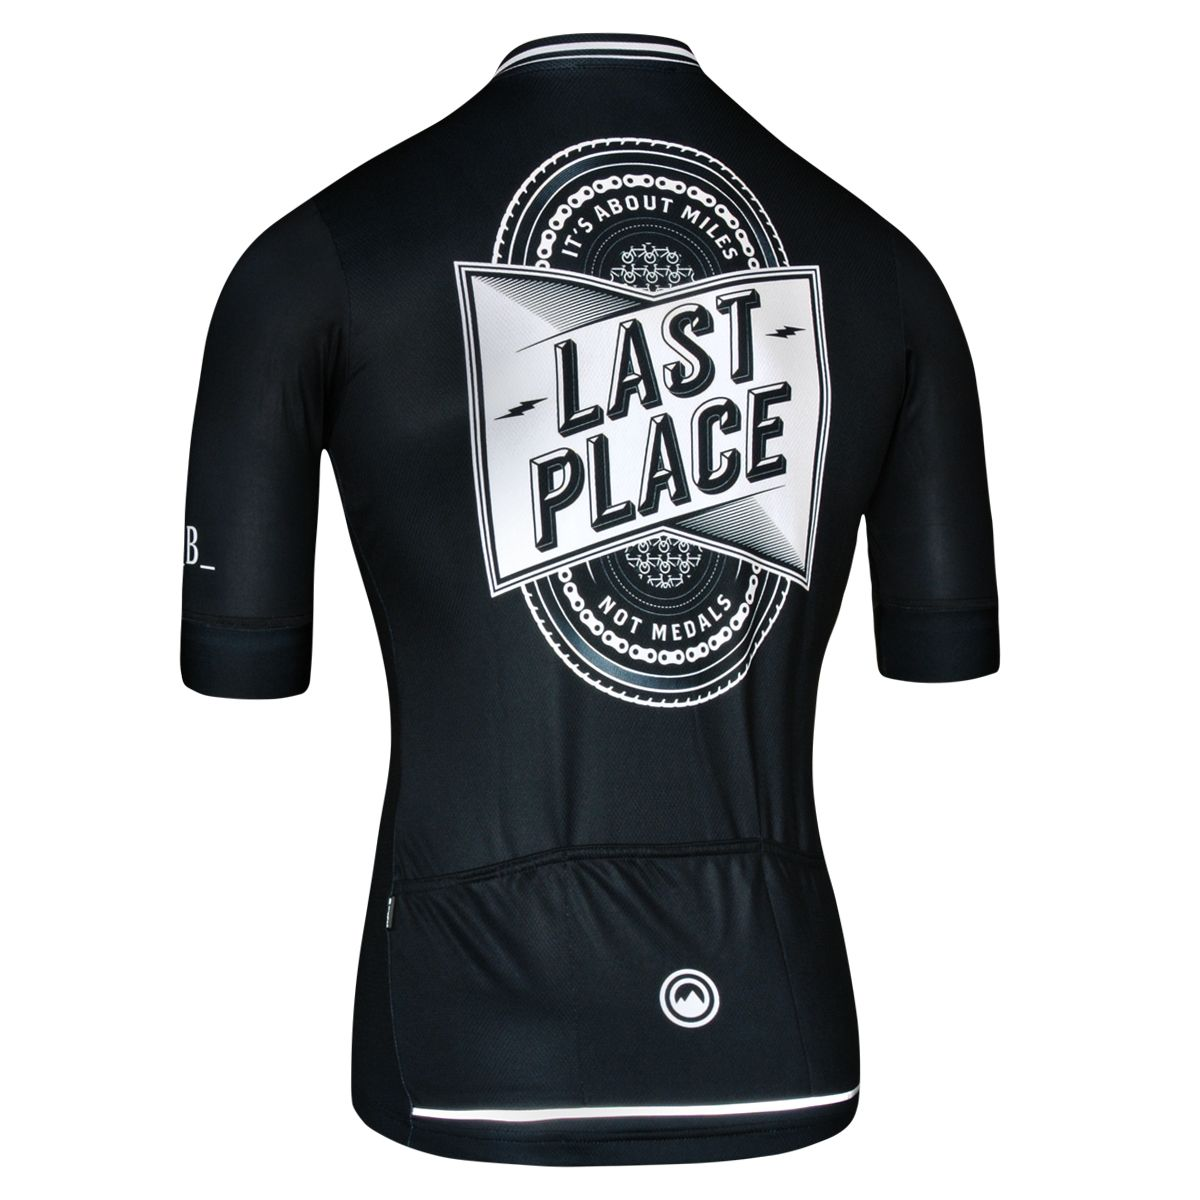 Last Place Women Jersey - Short Sleeve Women's Cycling Jersey by Milltag